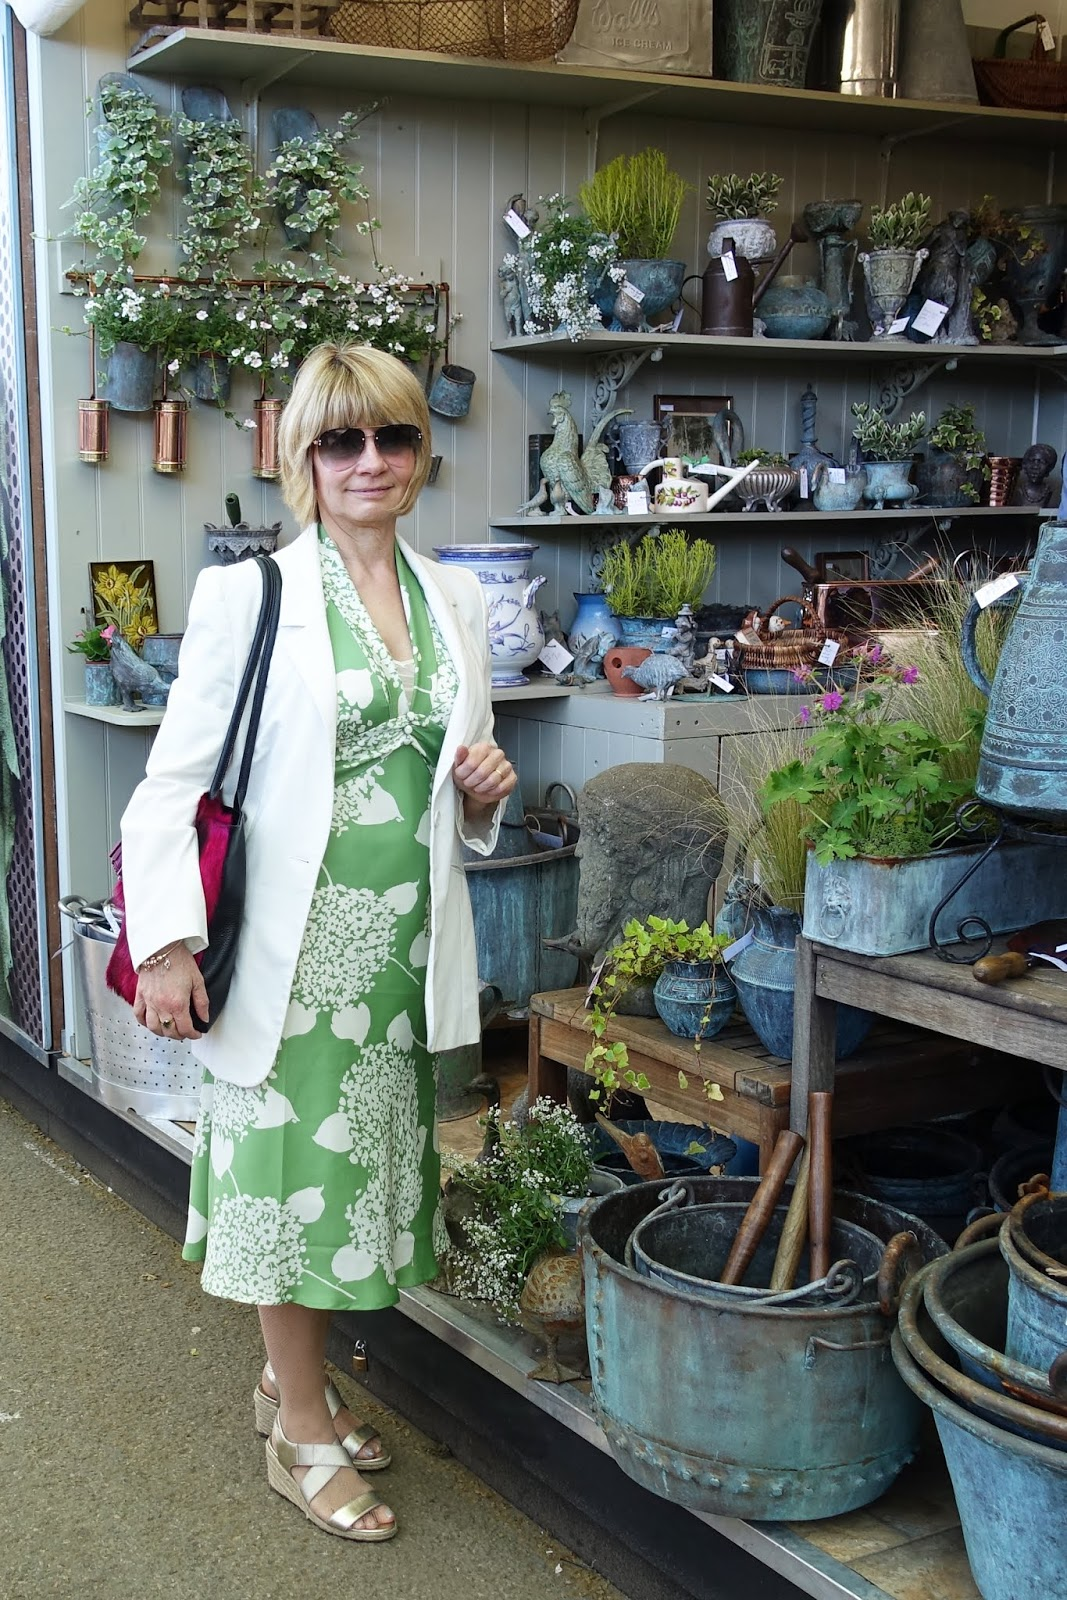 In front of a stall selling copper planters and garden decorations. Is This Mutton's Gail Hanlon in green and cream hydrangeas dress